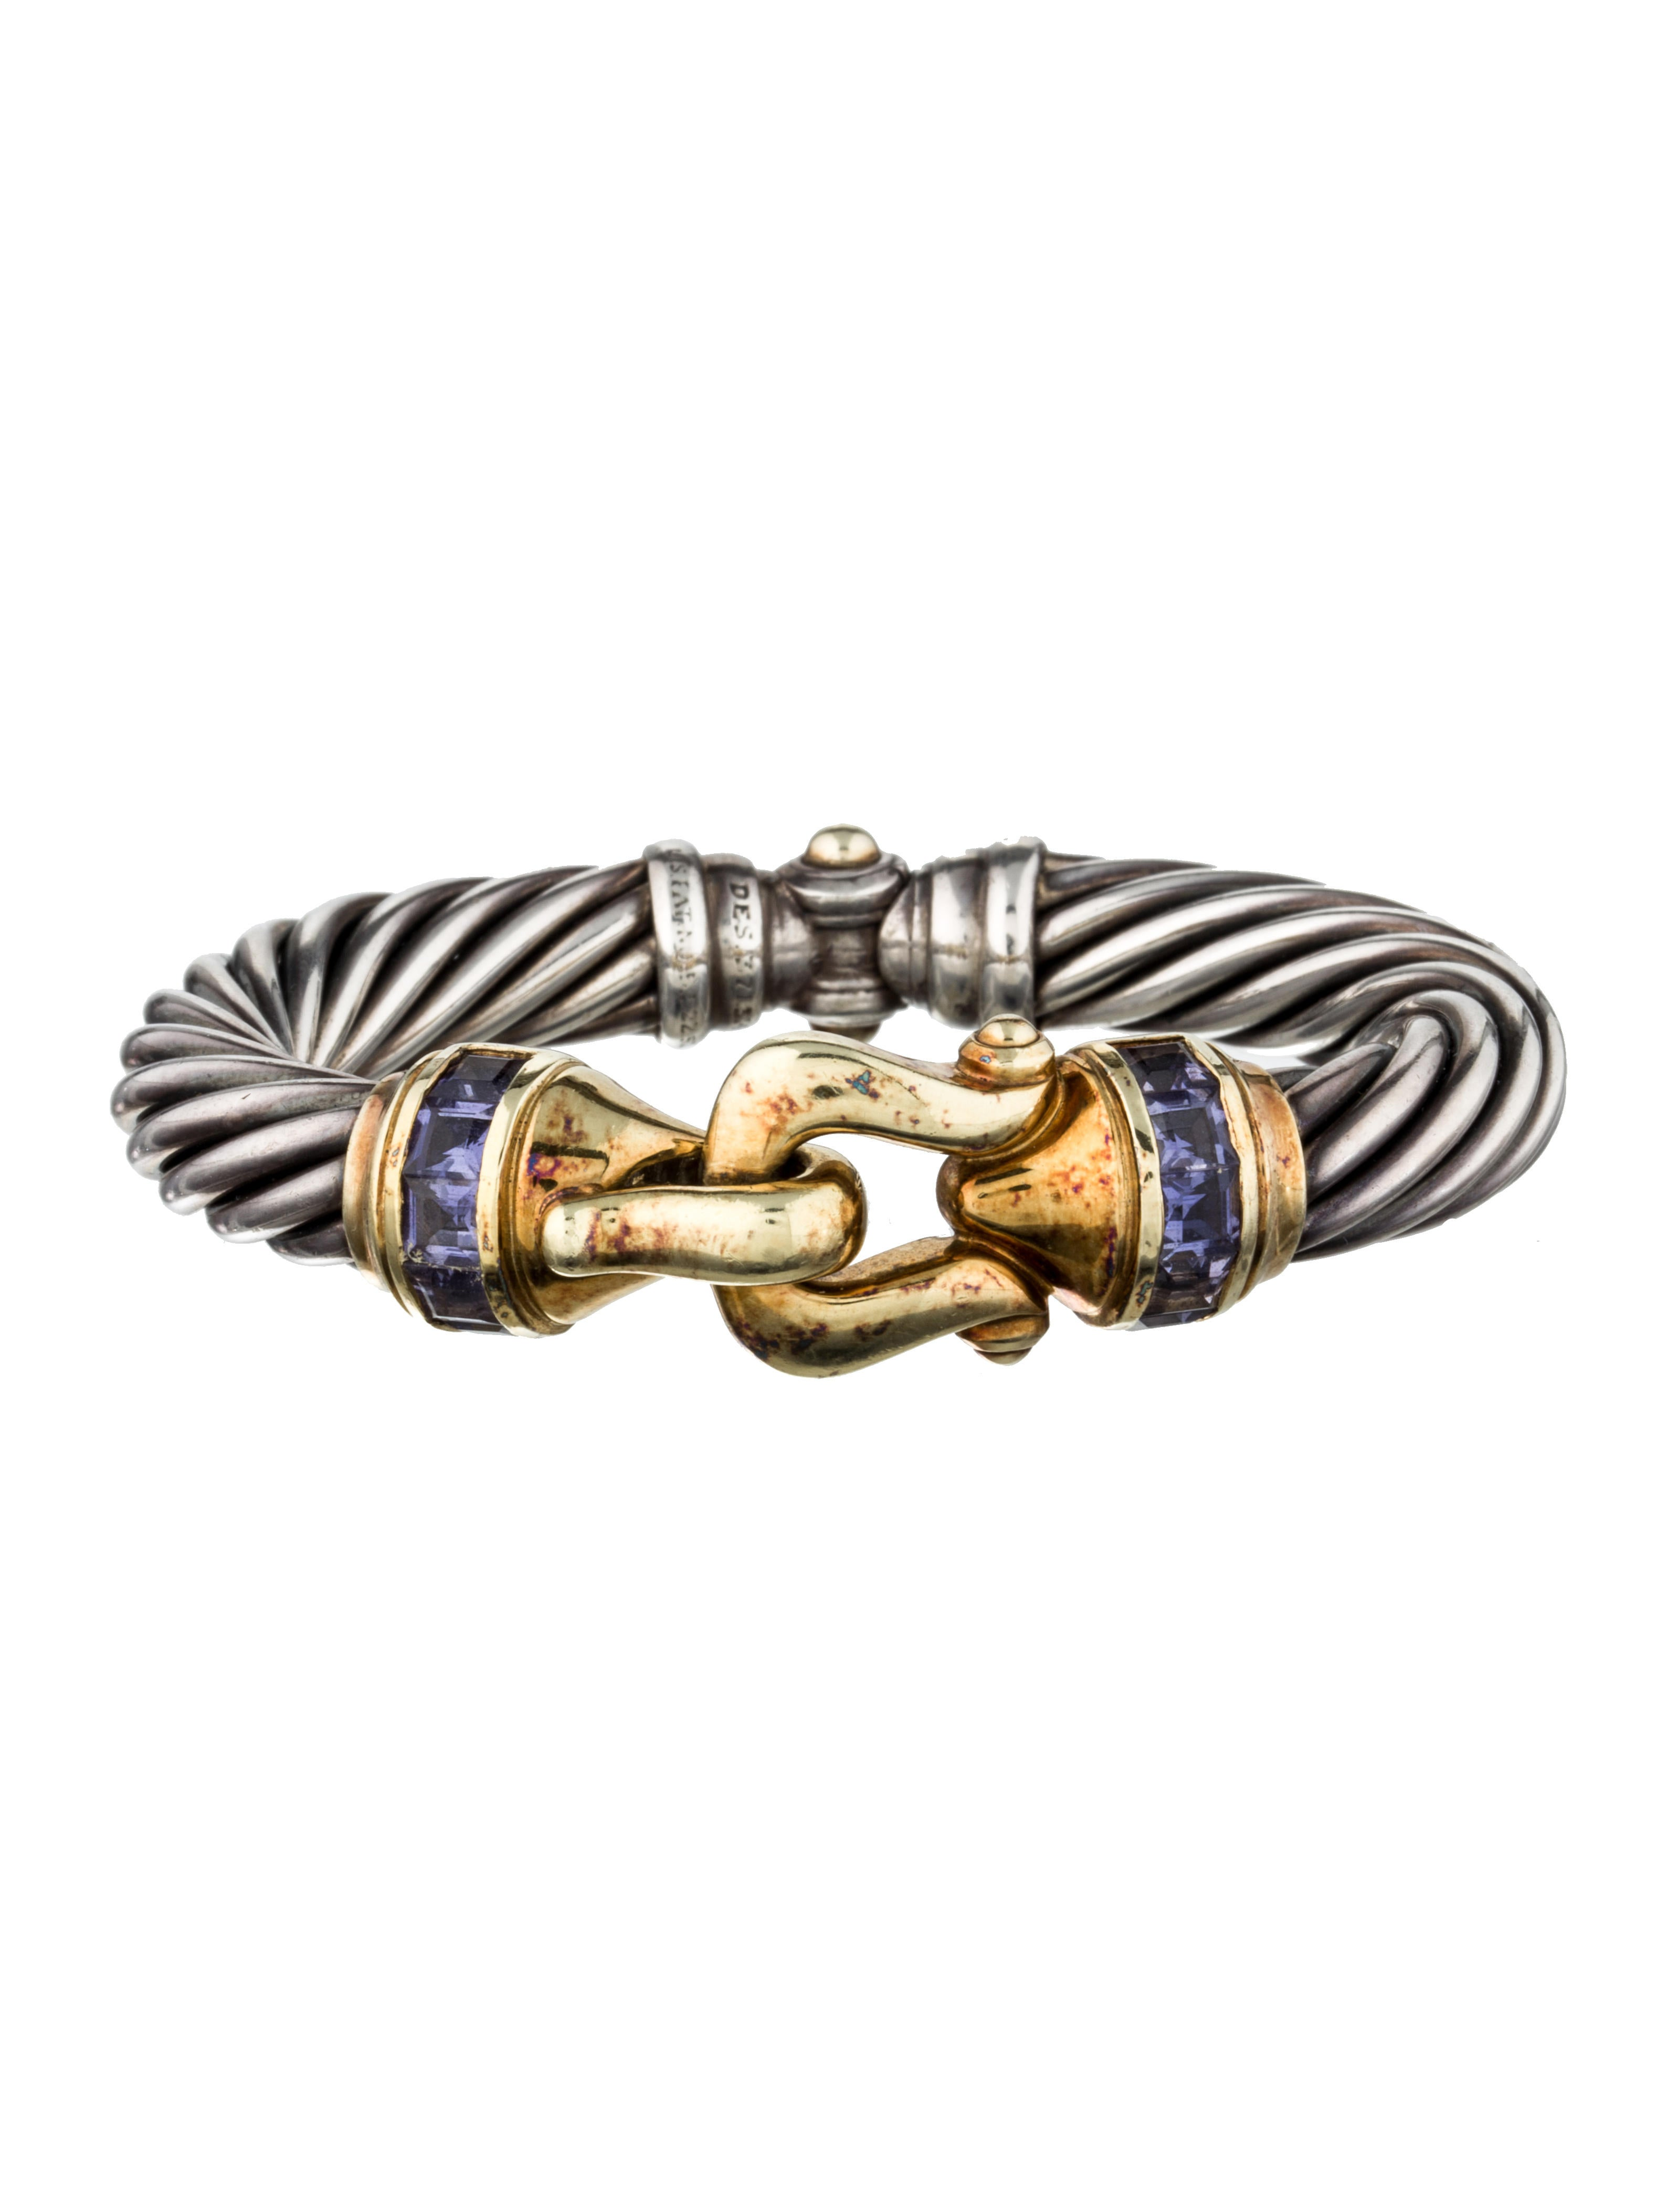 David yurman cable buckle bracelet jewelry dvy27425 for David yurman inspired bracelet cable